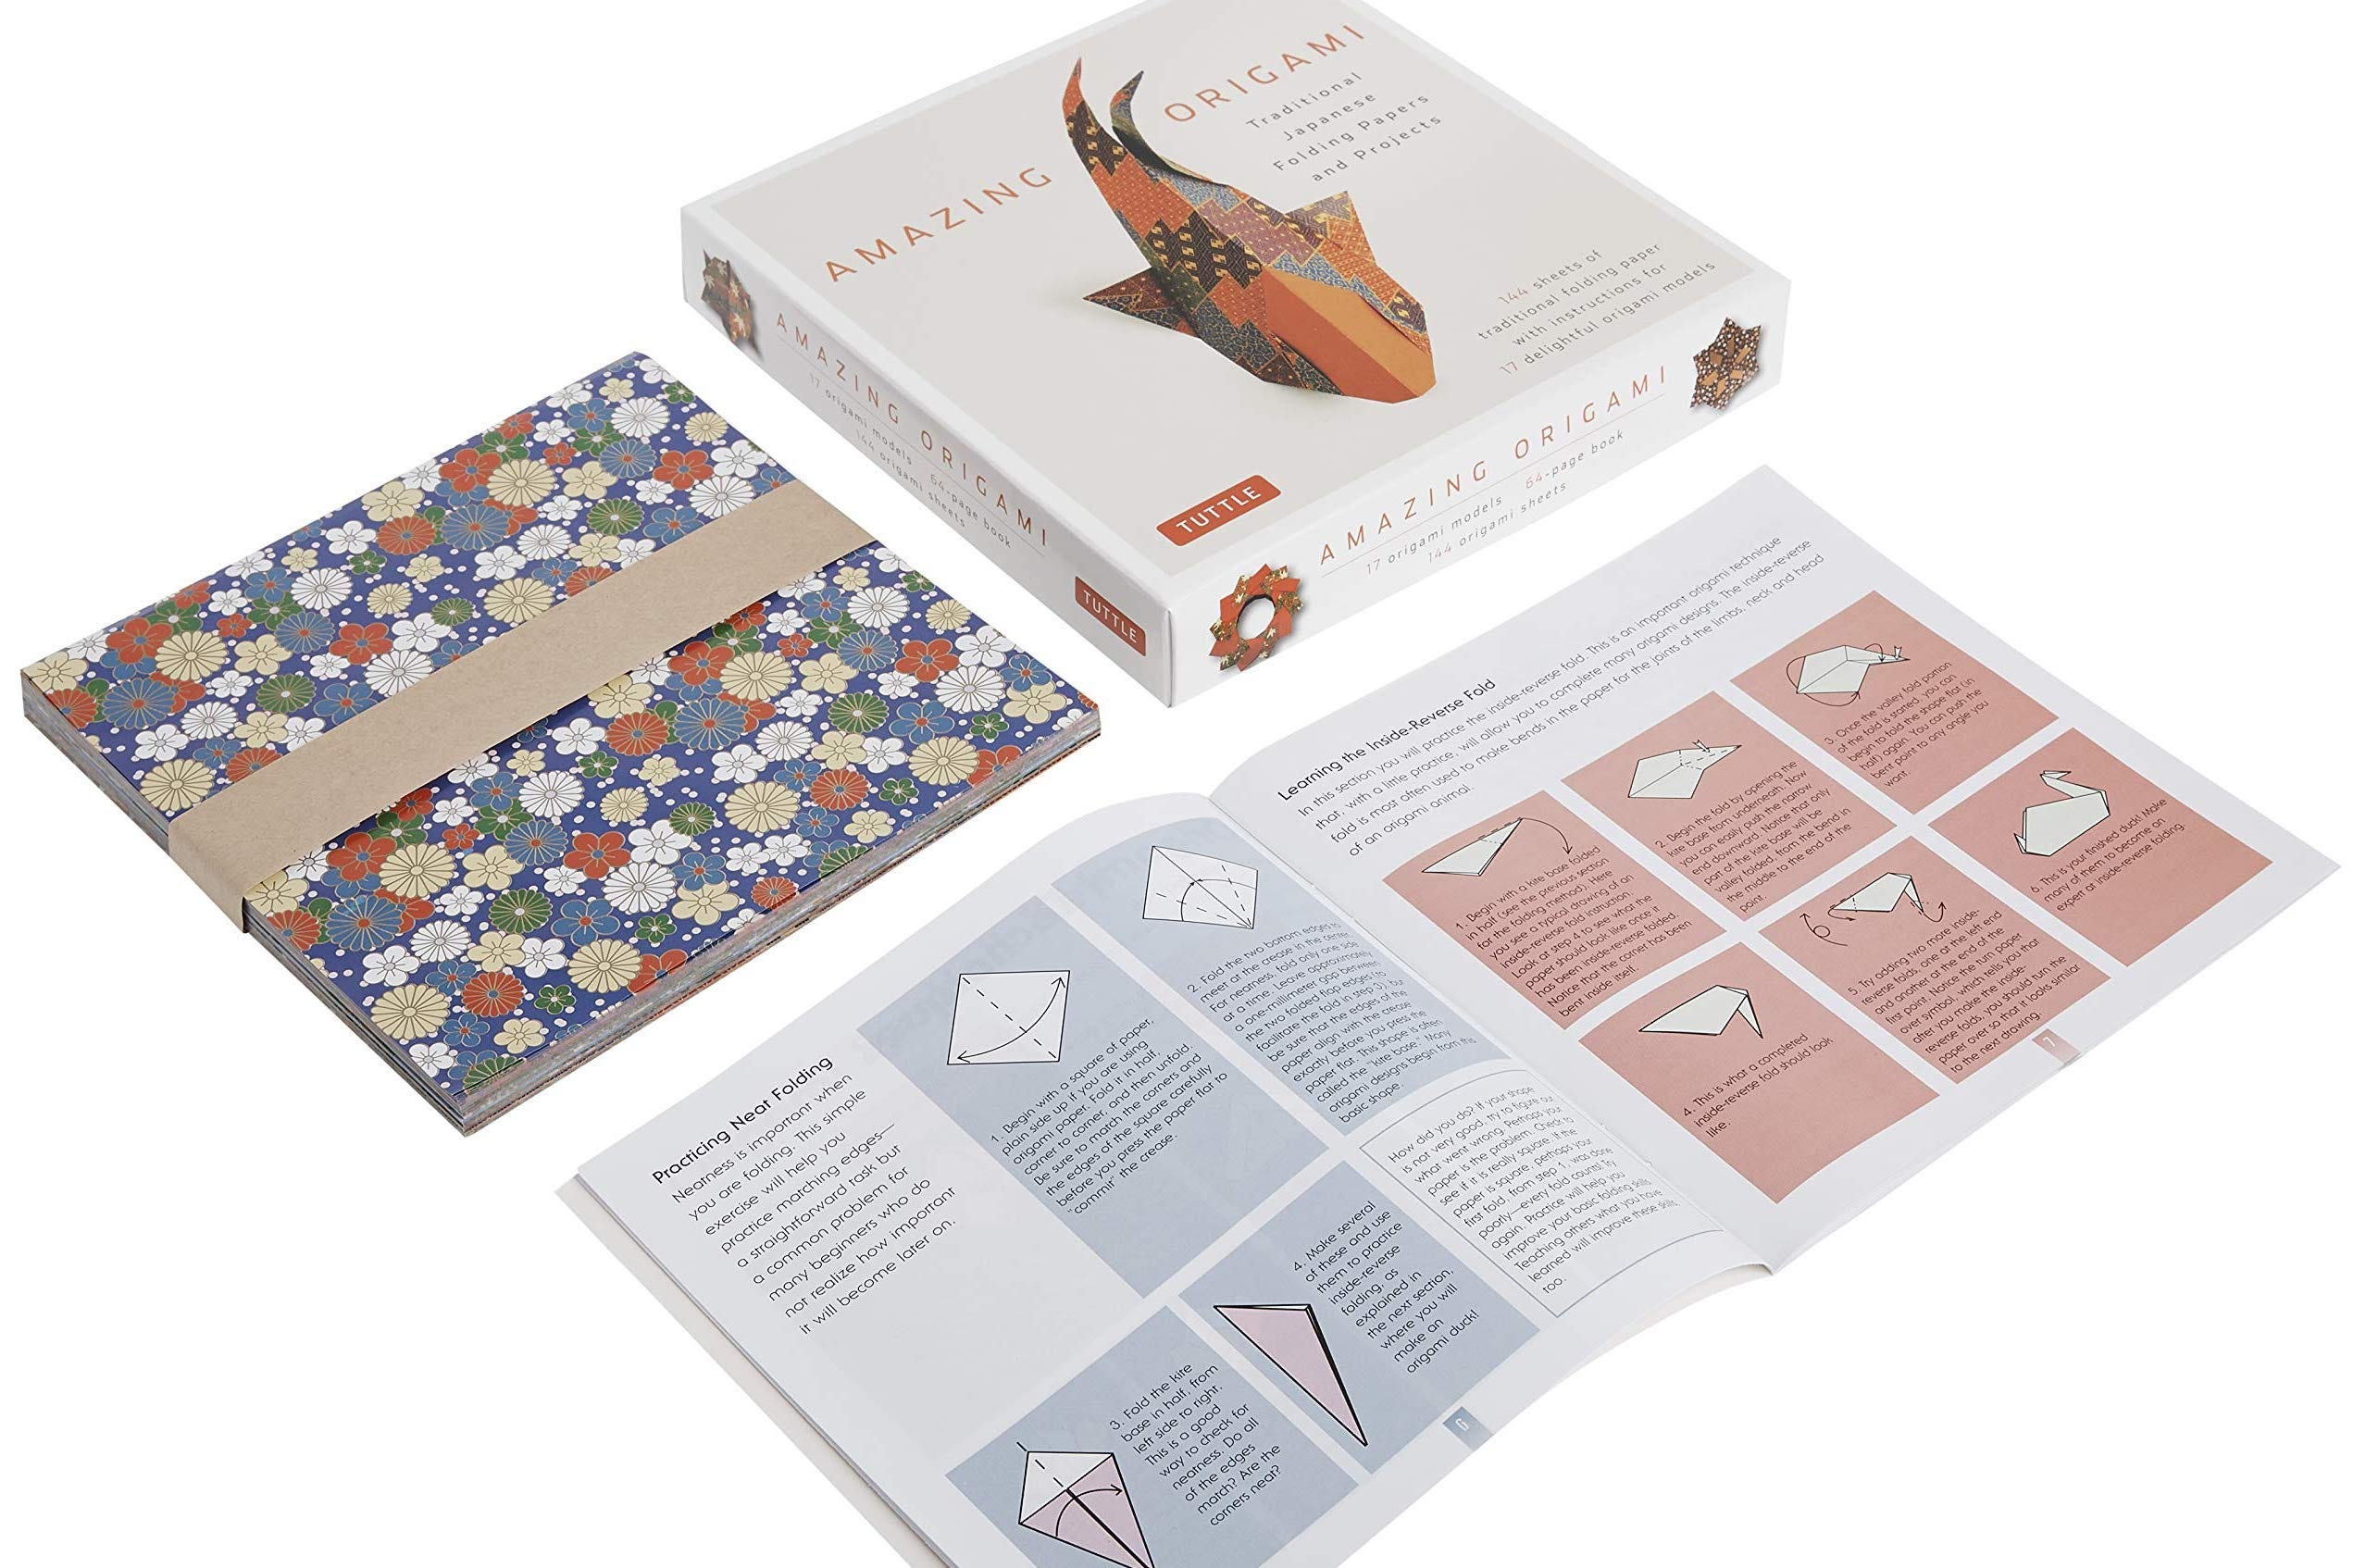 """A book titled """"Amazing Origami"""", open to show a folding pattern, next to colorful papers"""